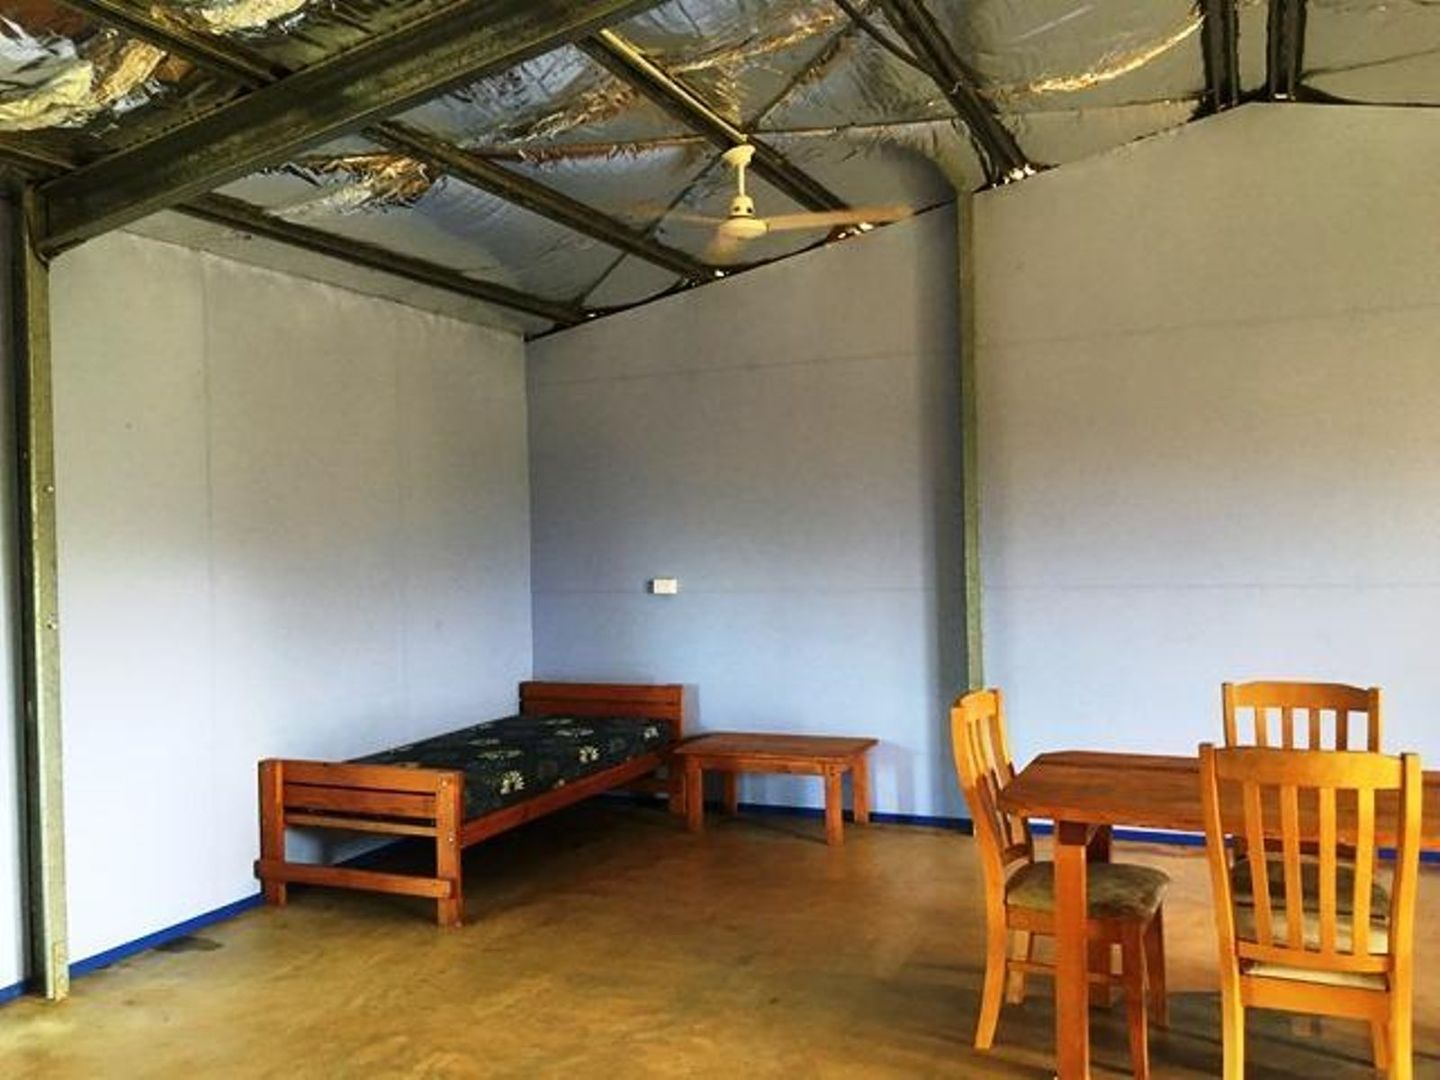 2522 PALMERSTON Highway, East Palmerston QLD 4860, Image 1